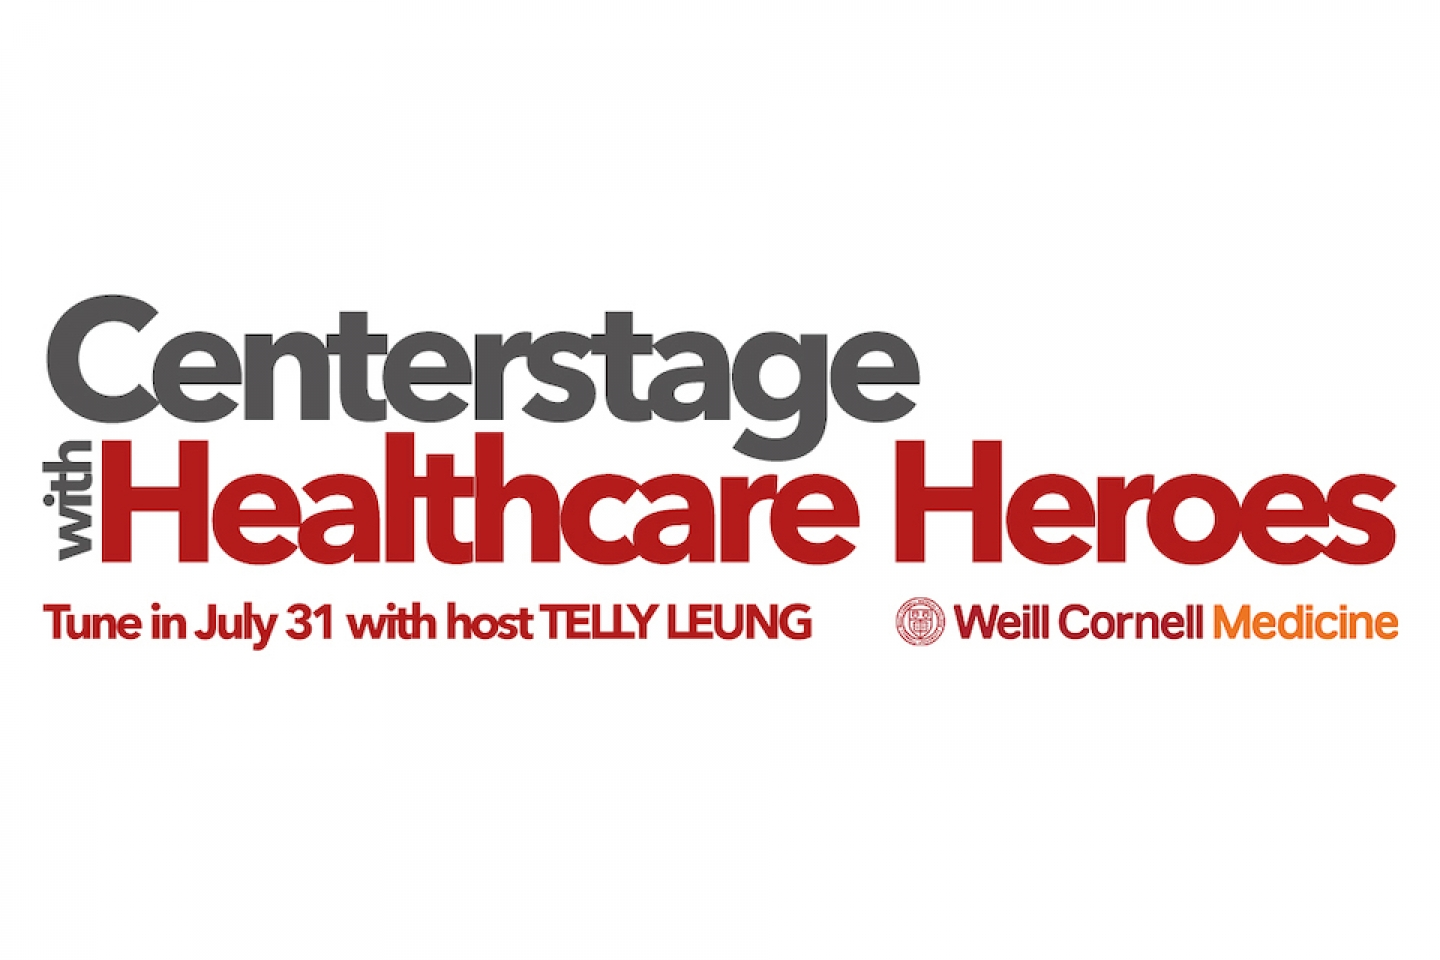 centerstage with healthcare heroes event